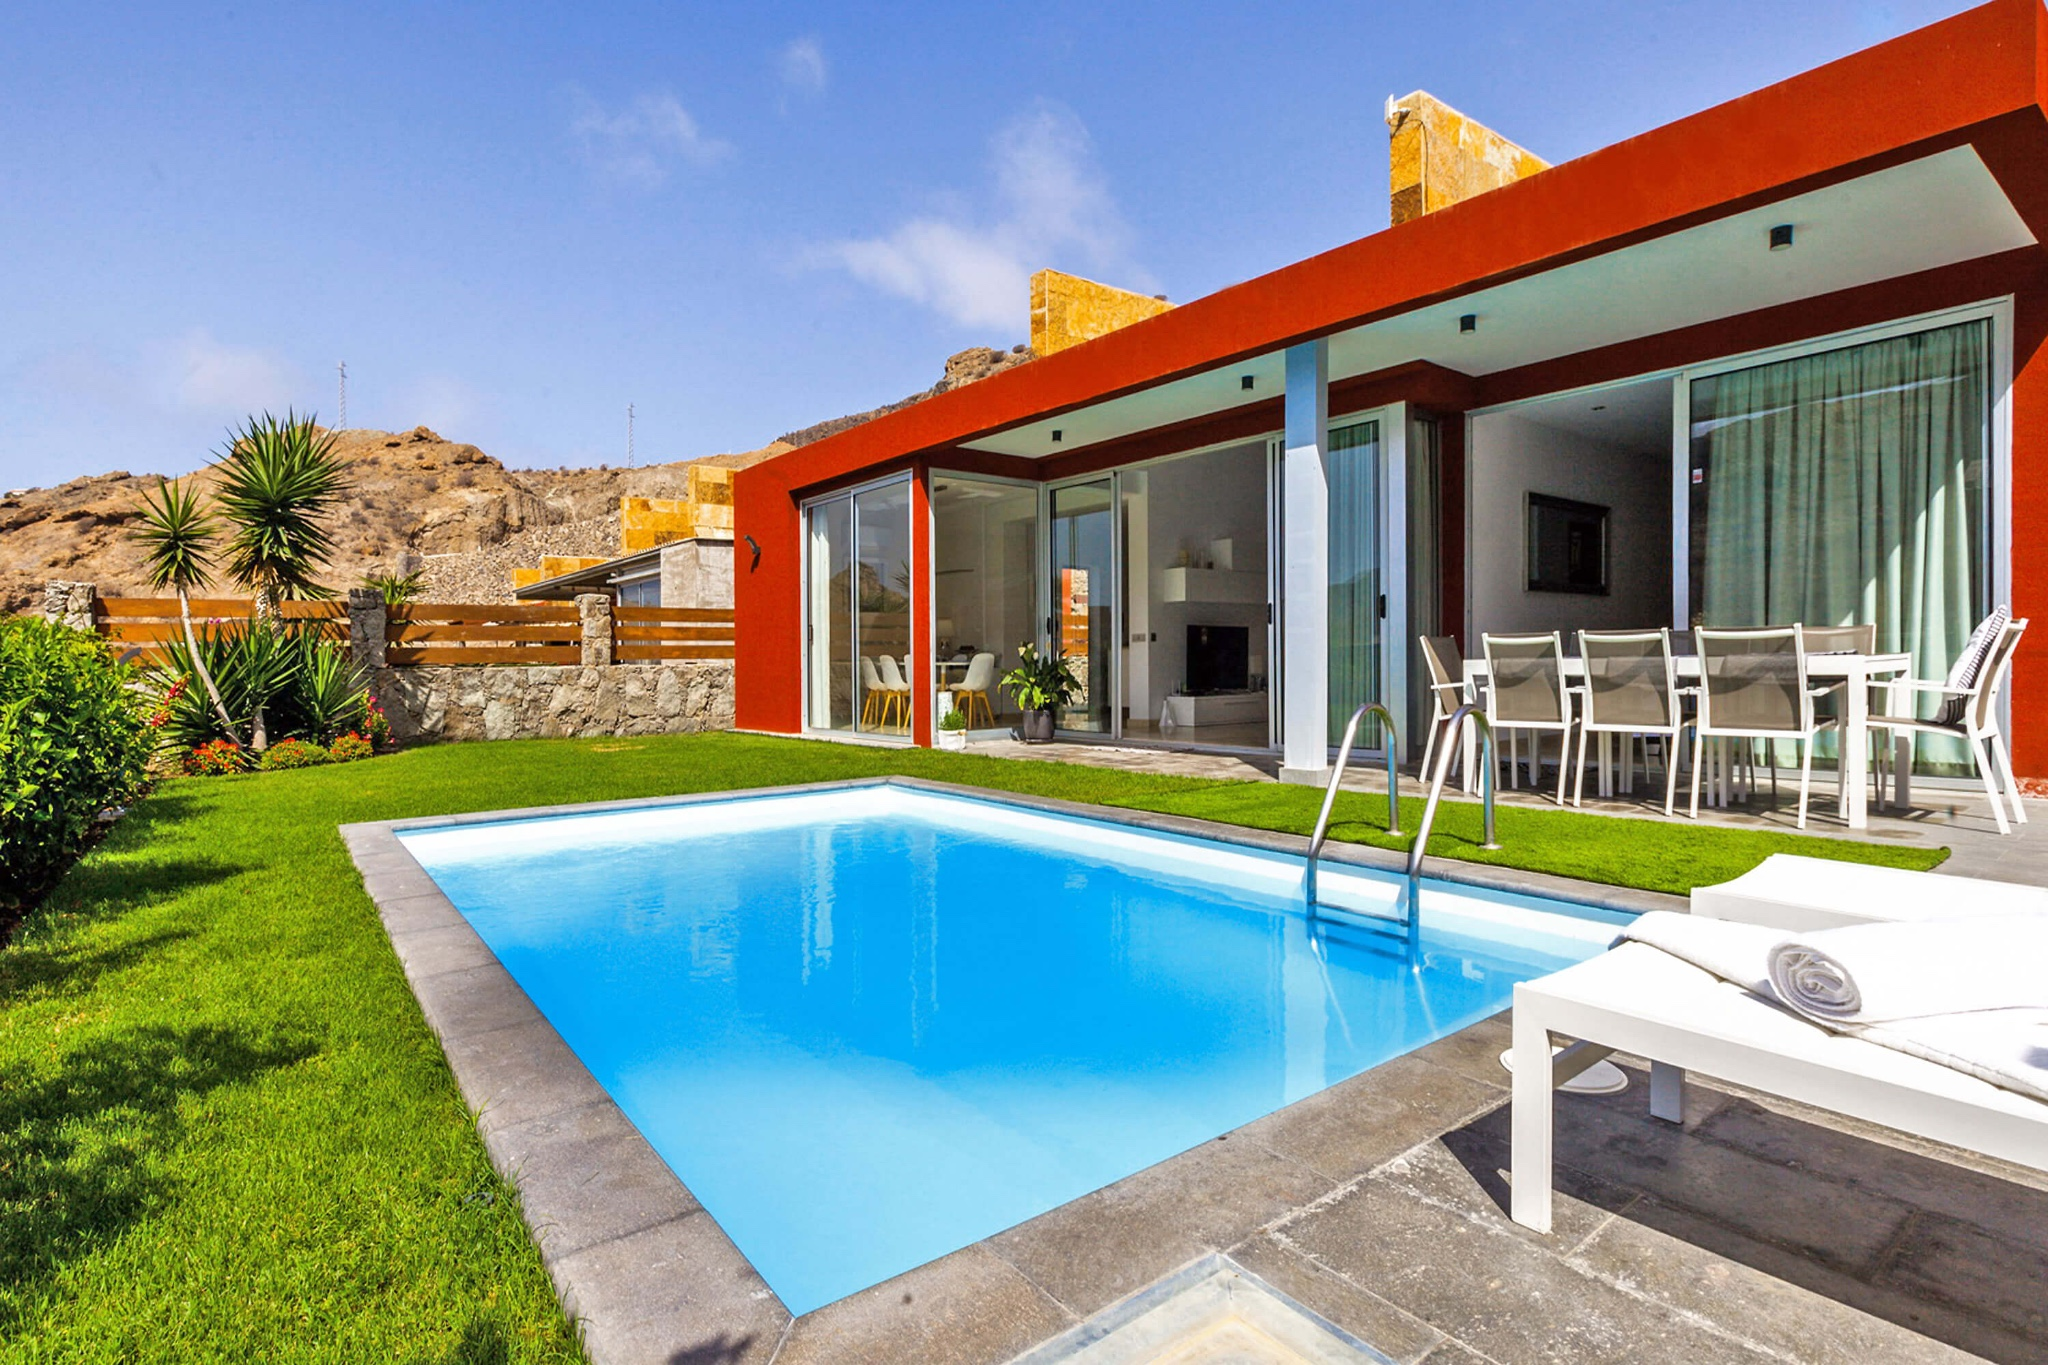 Modern open concept luxury villa with private pool overlooking the sea and mountains in the Anfi Tauro area